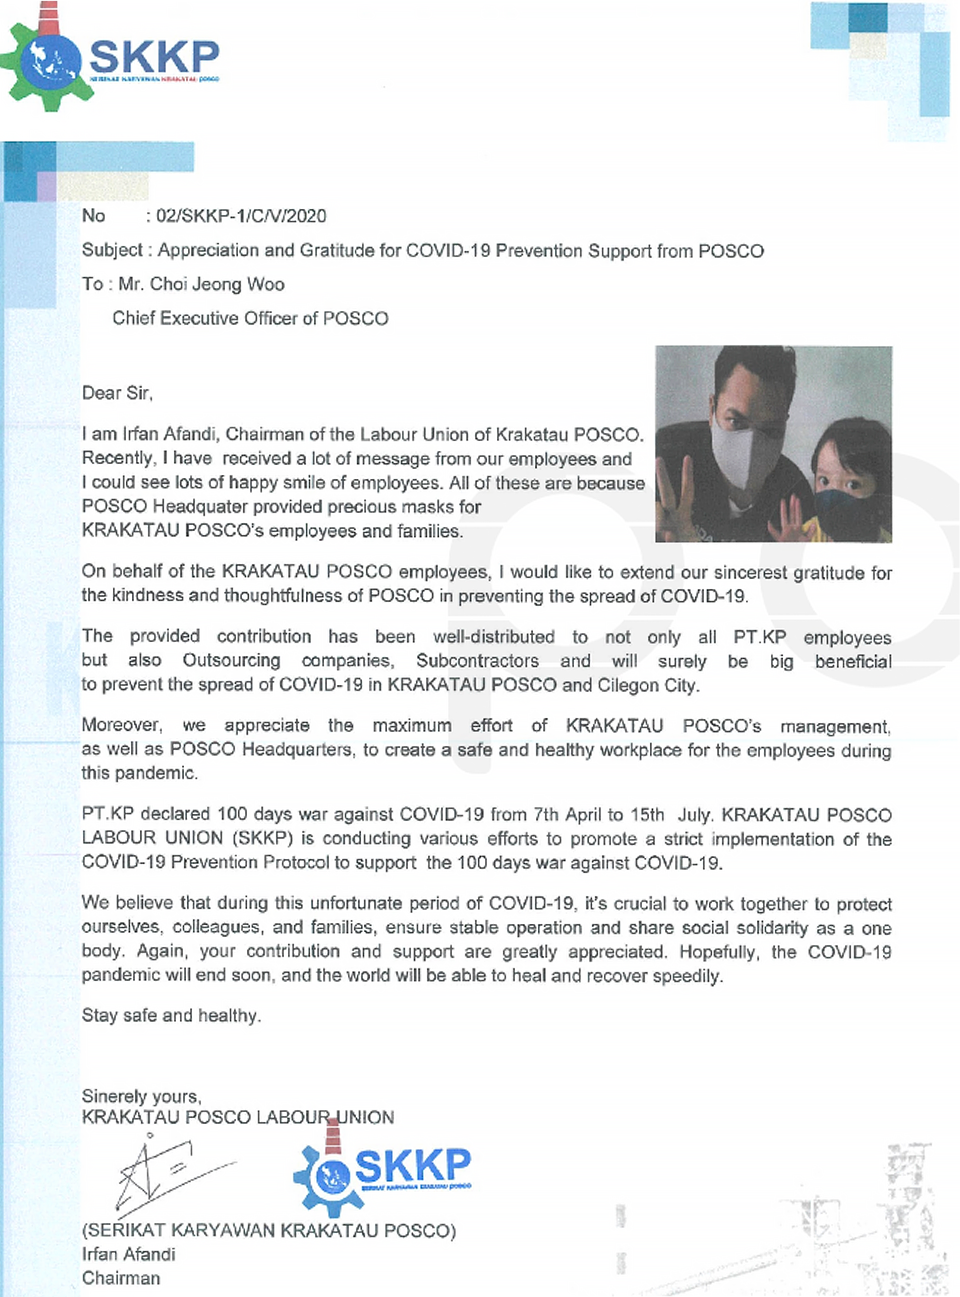 SKKP. No : 02/SKKP-1/C/V/2020. Subject: Appreciation and Gratitude for COVID-19 Prevention Support from POSCO. To . Mr. Choi Jeong Woo Chief Executive Officer of POSCO. Dear Sir. I am Irfan Afandi, Chairman of the Labour Union of Krakatau POSCO. Recently, I have received a lot of message from our employees and I could see lots of happy smile of employees. All of these are because POSCO Headquater provided precious masks for KRAKATAU POSCO's employees and families. On behalf of the KRAKATAU POSCO employees, I would like to extend our sincerest gratitude for the kindness and thoughtfulness of POSCO in preventing the spread of COVID-19. The provided contribution has been well-distributed to not only all PT.KP employees but also Outsourcing companies, Subcontractors and will surely be big beneficial to prevent the spread of COVID-19 in KRAKATAU POSCO and Cilegon City. Moreover, we appreciate the maximum effort of KRAKATAU POSCO's management, as well as POSCO Headquarters, to creat a safe and healthy workplace for the employees during this pandemic. PT.KP declared 100 days war against COVID-19 from 7th April to 15th July. KRAKATAU POSCO LABOUR UNION (SKKP) is conducting various efforts to promote a strict implementation of the COVID-19 Prevention Protocol to support the 100 days war against COVID-19. We believe that during this unfortunate period of COVID-19, it's crucial to work together to protect ourselves, colleagues, and families, ensure stable operation and share social solidarity as a one body. Again, your contribution and support are greatly appreciated. Hopefully, the COVID-19 pandemic will end soon, and the world will be able to heal and recover speedily. Stay safe and healthy. Sinerely yours, KRAKATAU POSCO LABOUR UNION (SERIKAT KARYAWAN KRAKATAU POSCO) Irfan Afandi Chairman